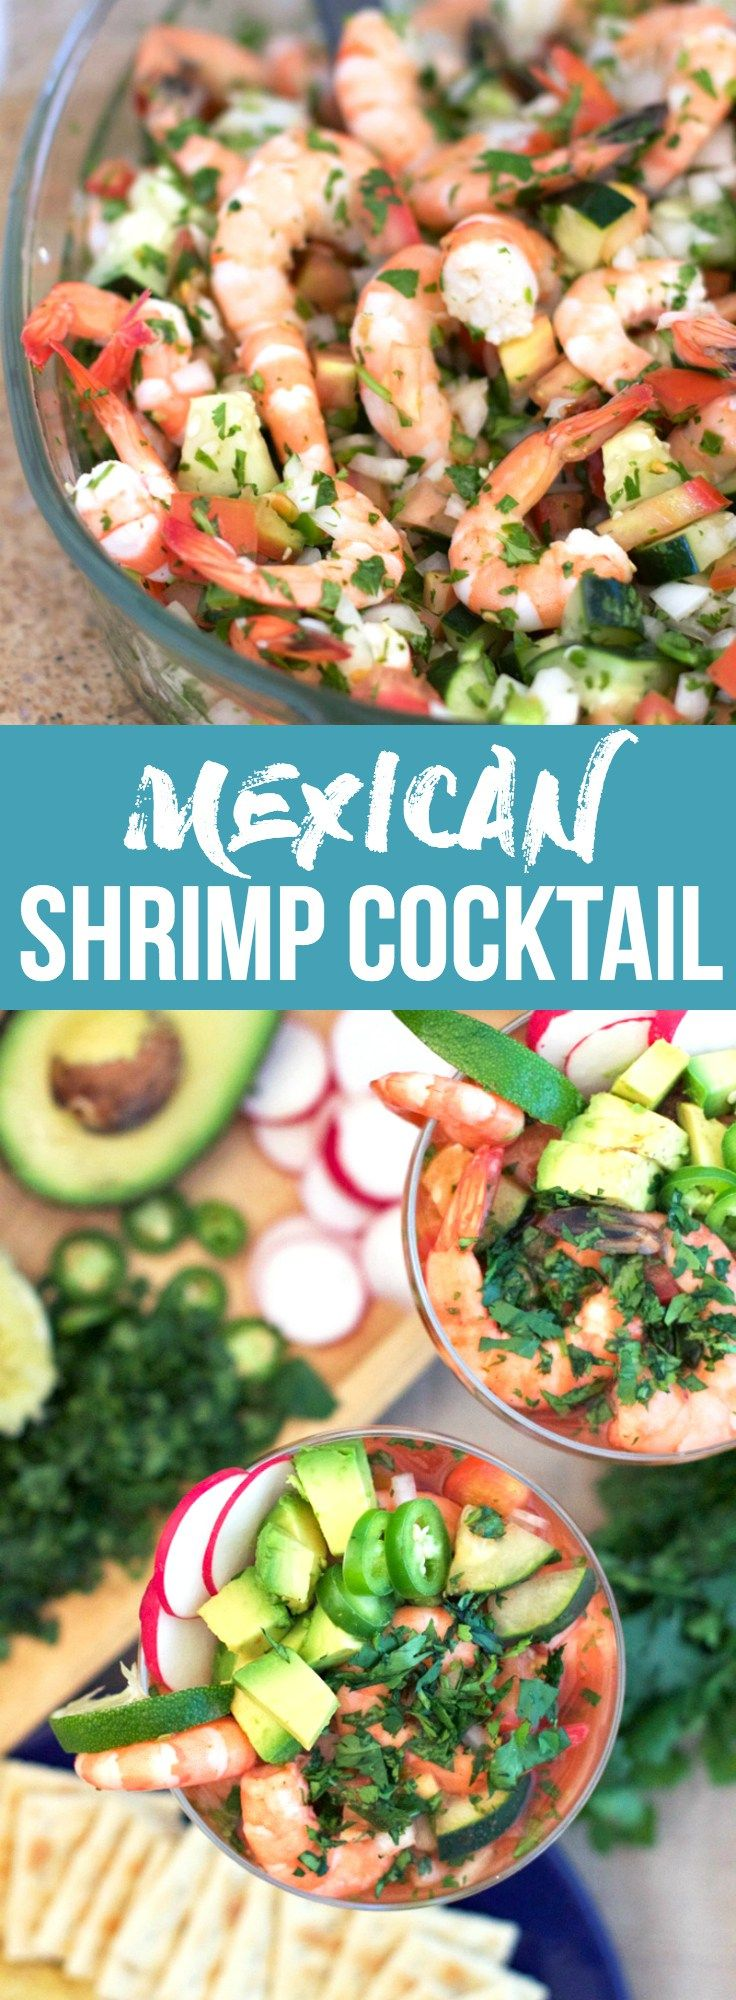 Mexican Shrimp Cocktail — This Mexican Shrimp Cocktail is a perfect summer (or winter) treat packed with juicy shrimps, avocado, and an undeniably tasty broth | bitsofumami.com